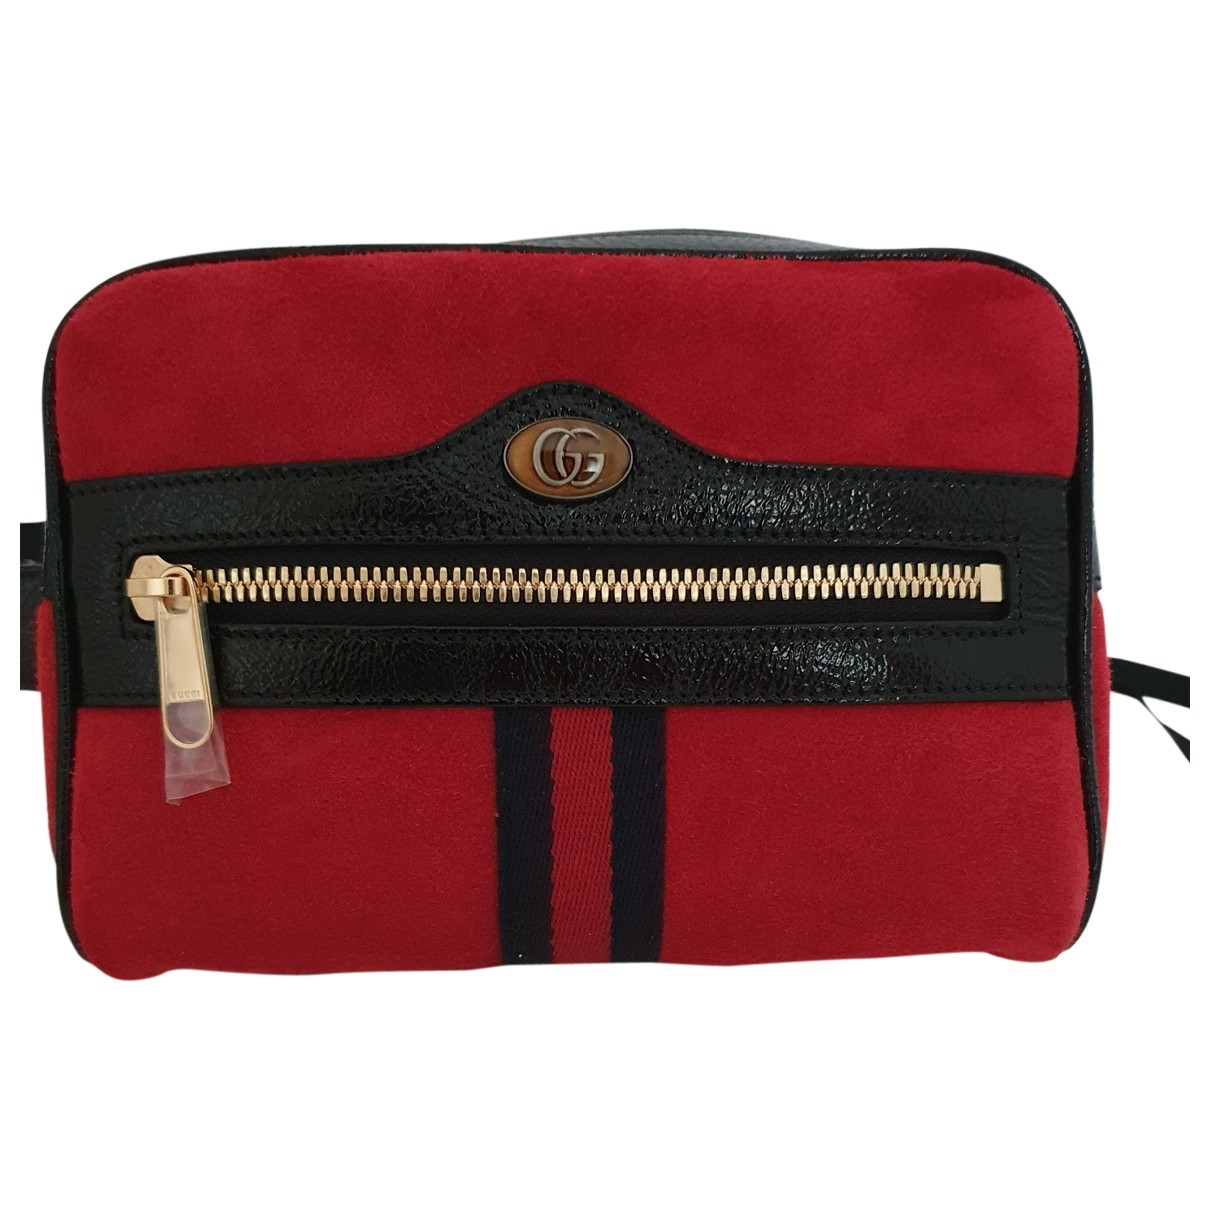 Gucci Ophidia Red Suede handbag for Women \N